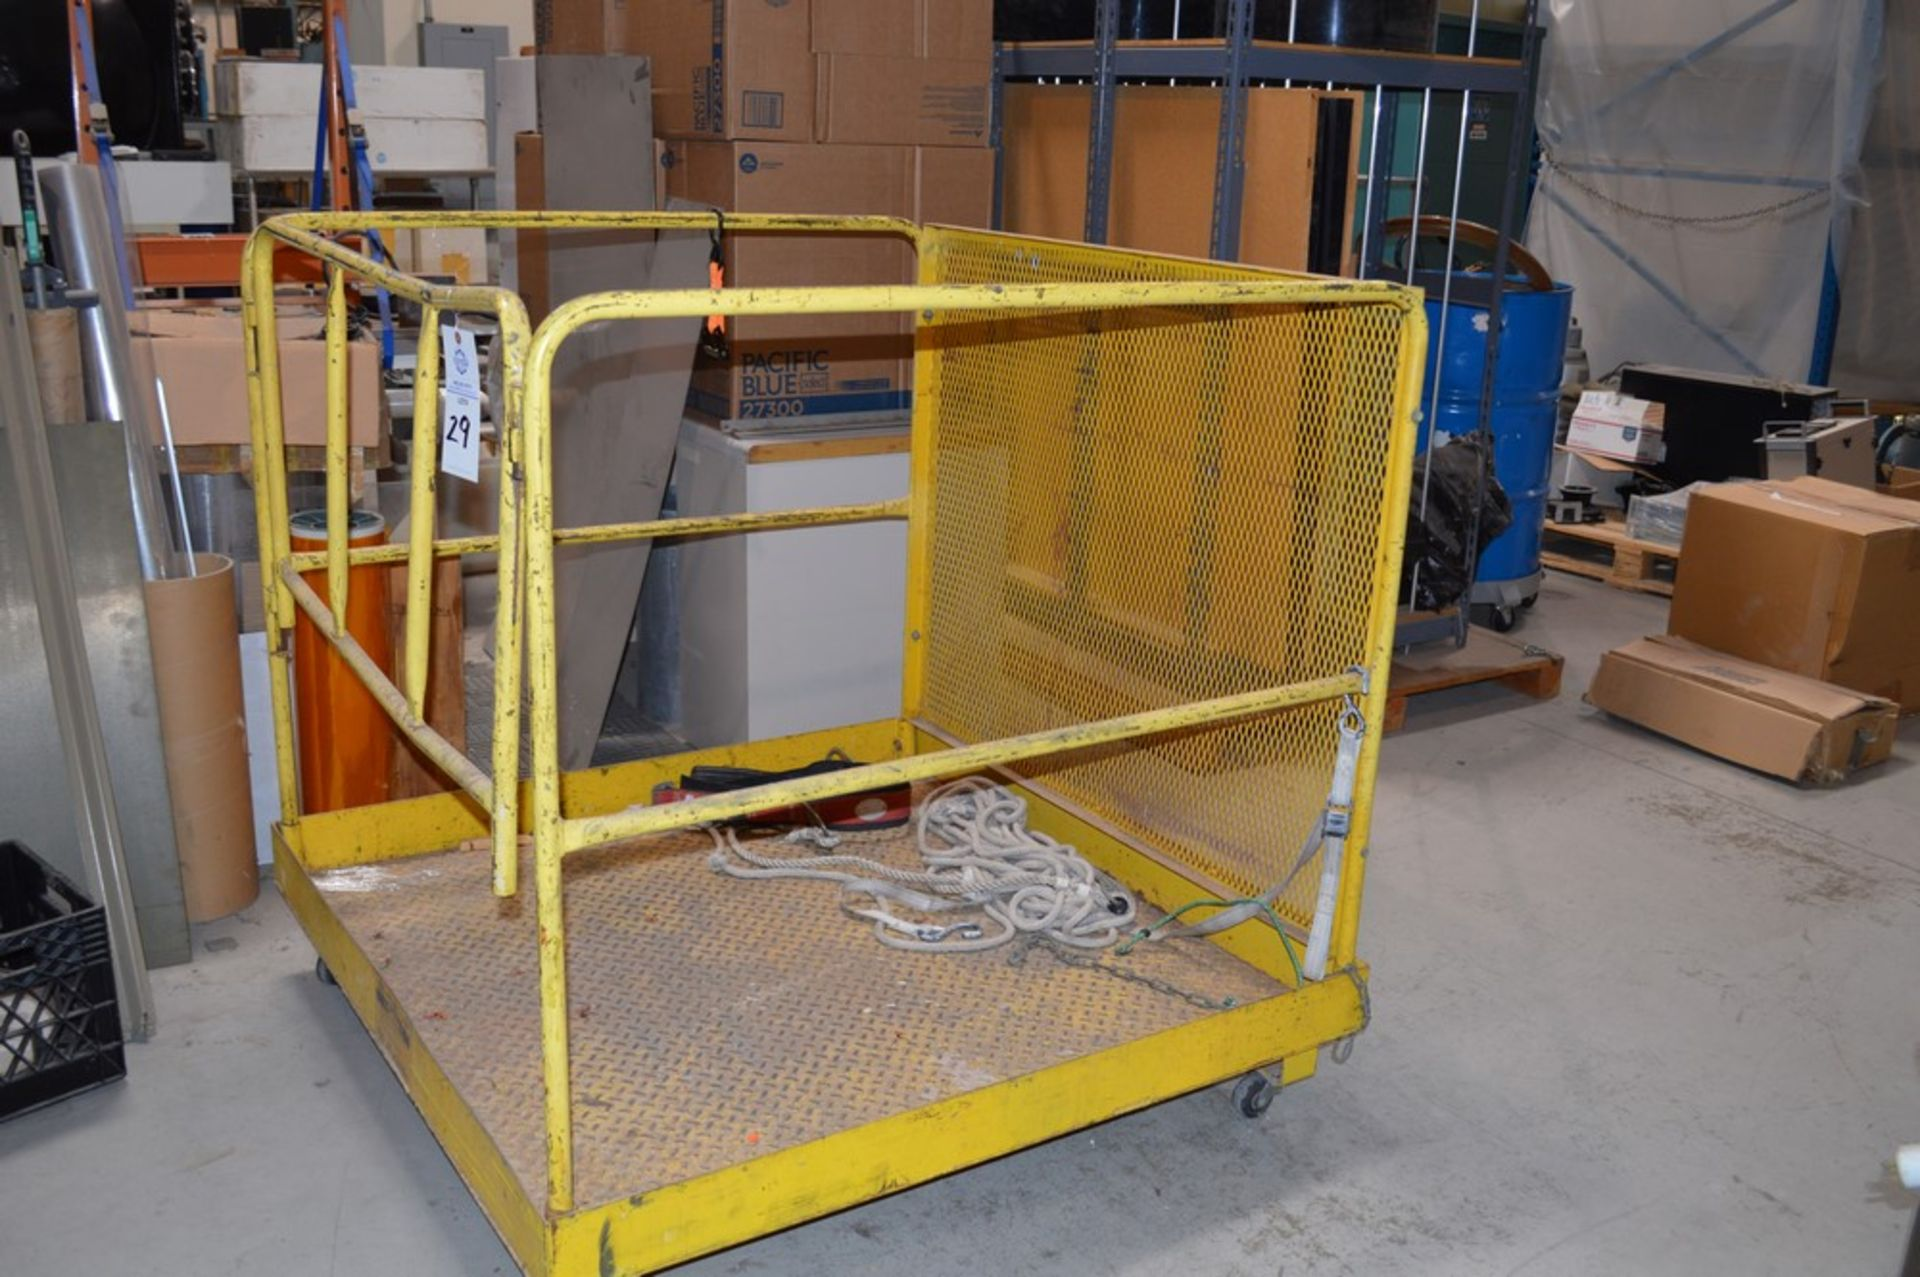 """Forklift Man Lift Attachment 48"""" x 48"""" x 42"""" Tall - Image 2 of 3"""